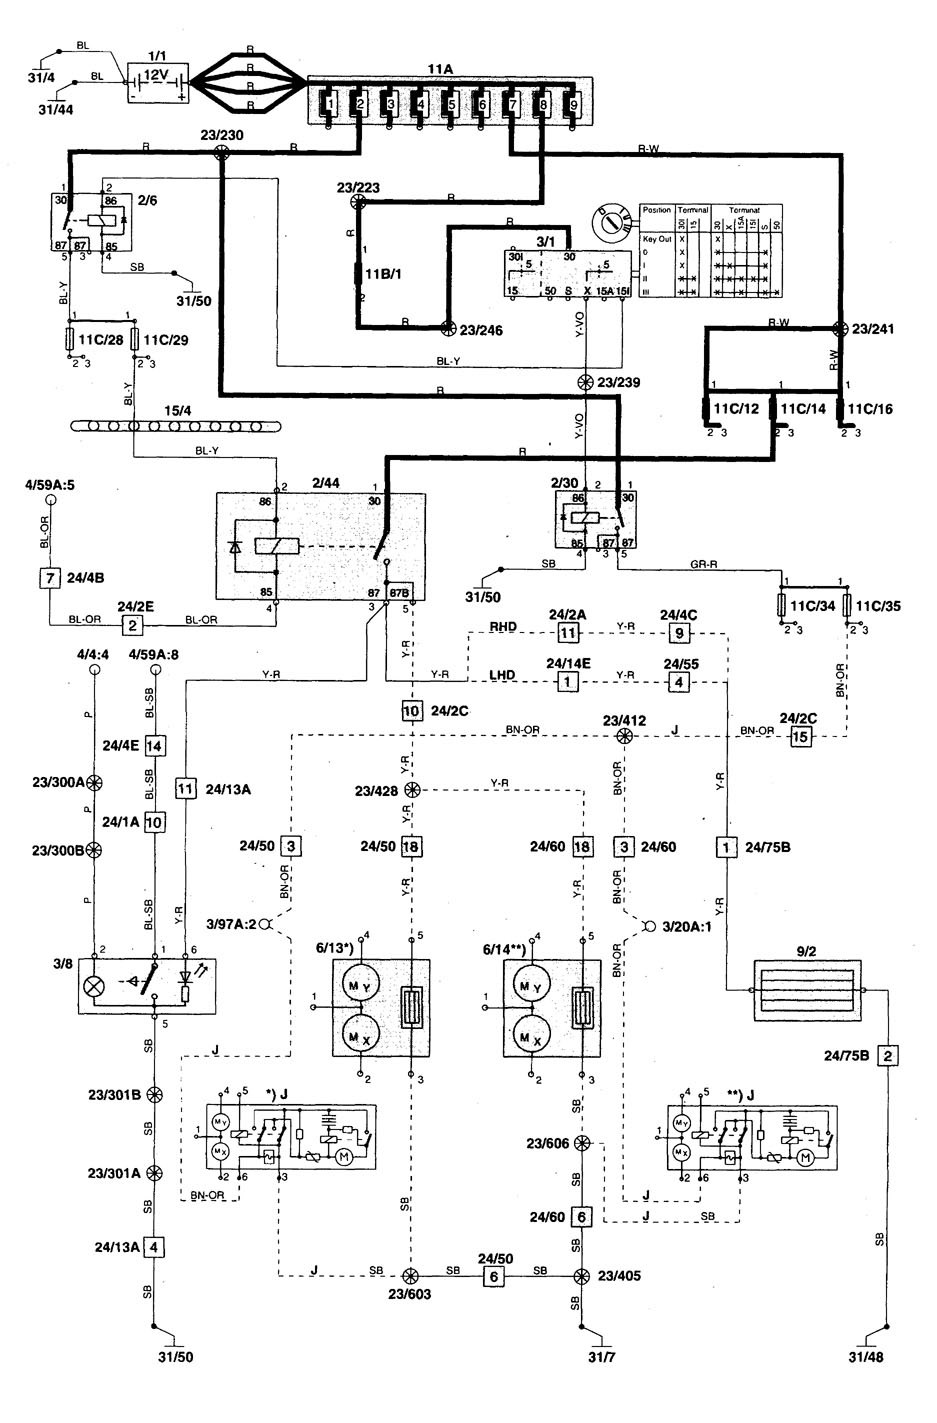 heated mirror wiring diagram grote heated mirror wiring diagram rh maerkang org